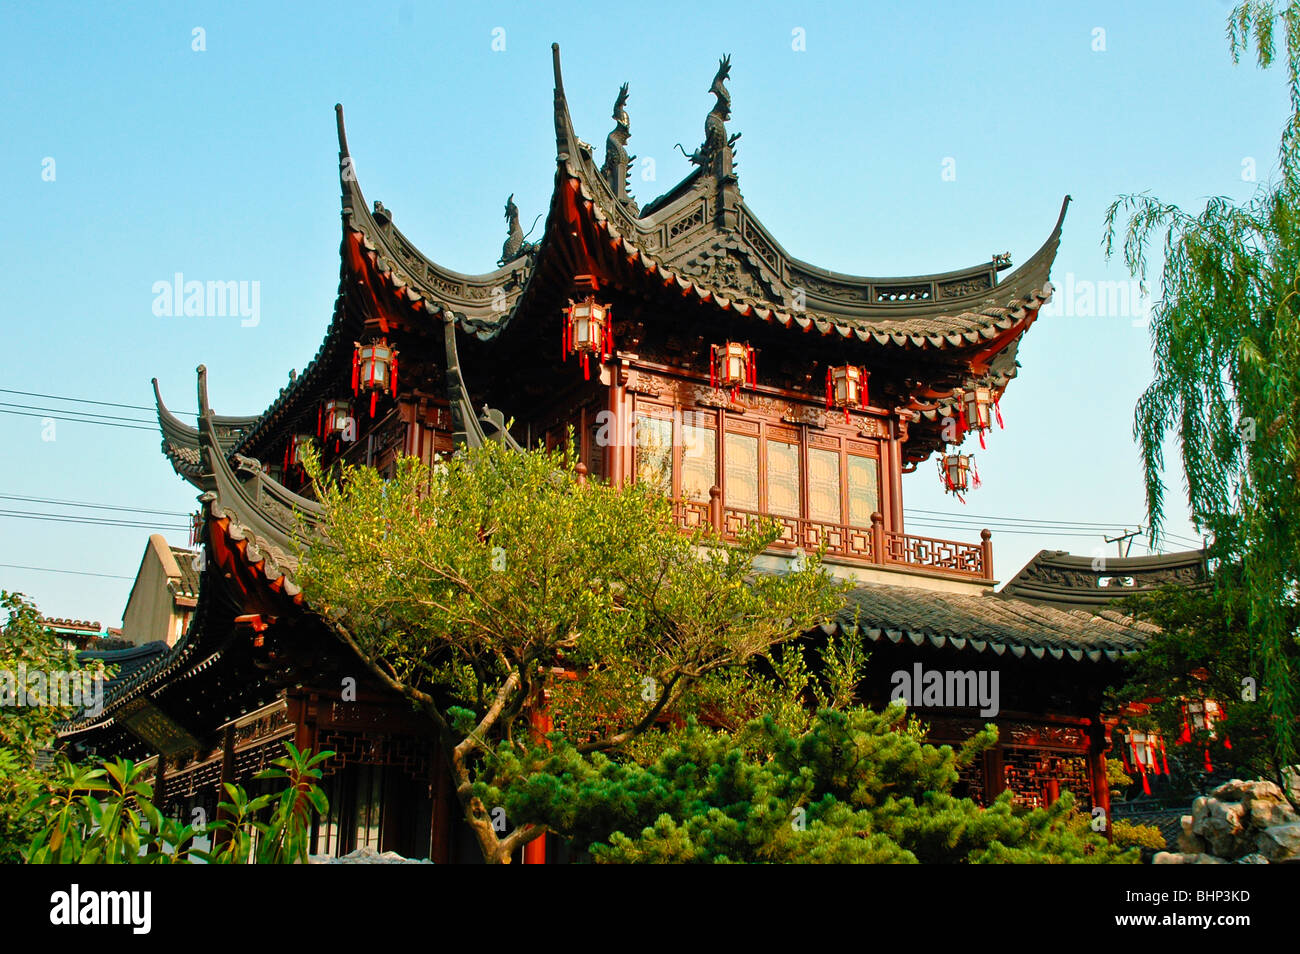 traditional chinese house with decorative roof at yuyuan gardens